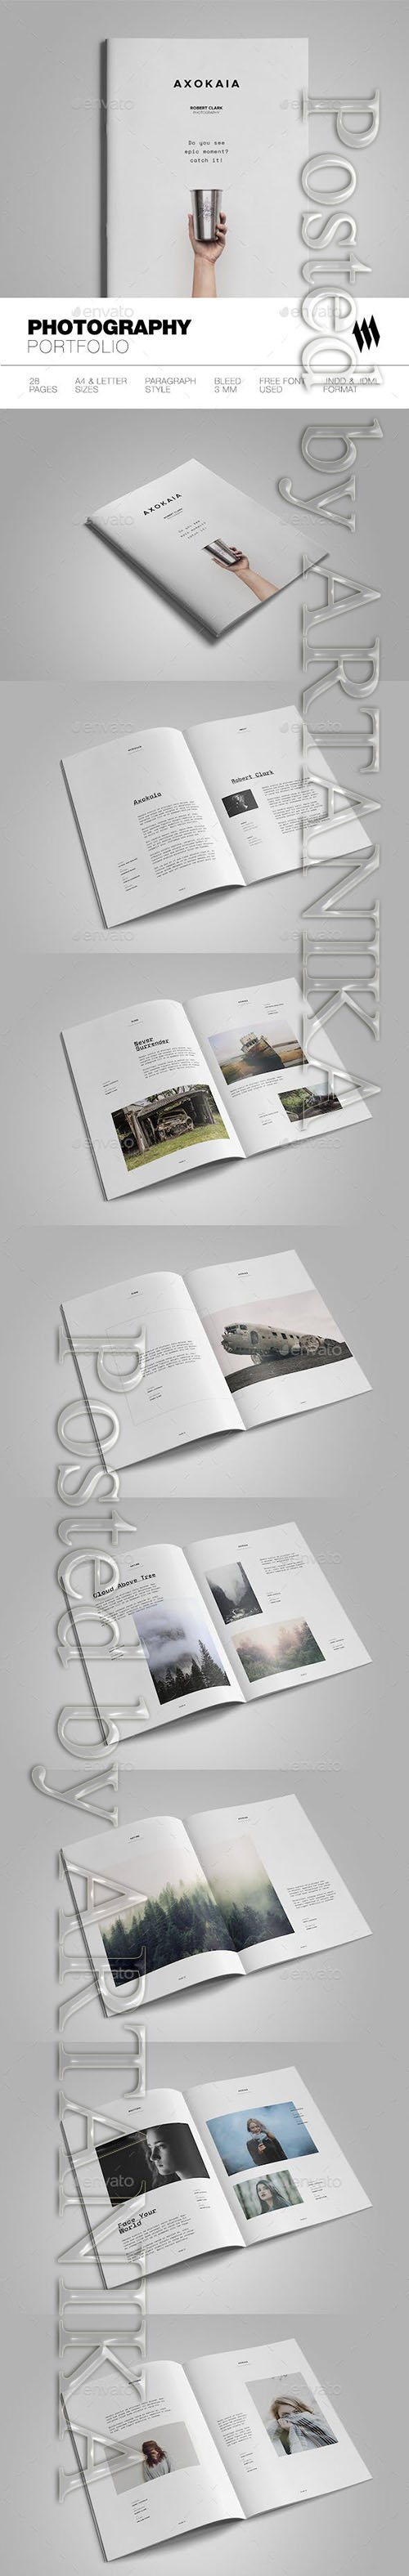 GraphicRiver - Photography Portfolio 19254118